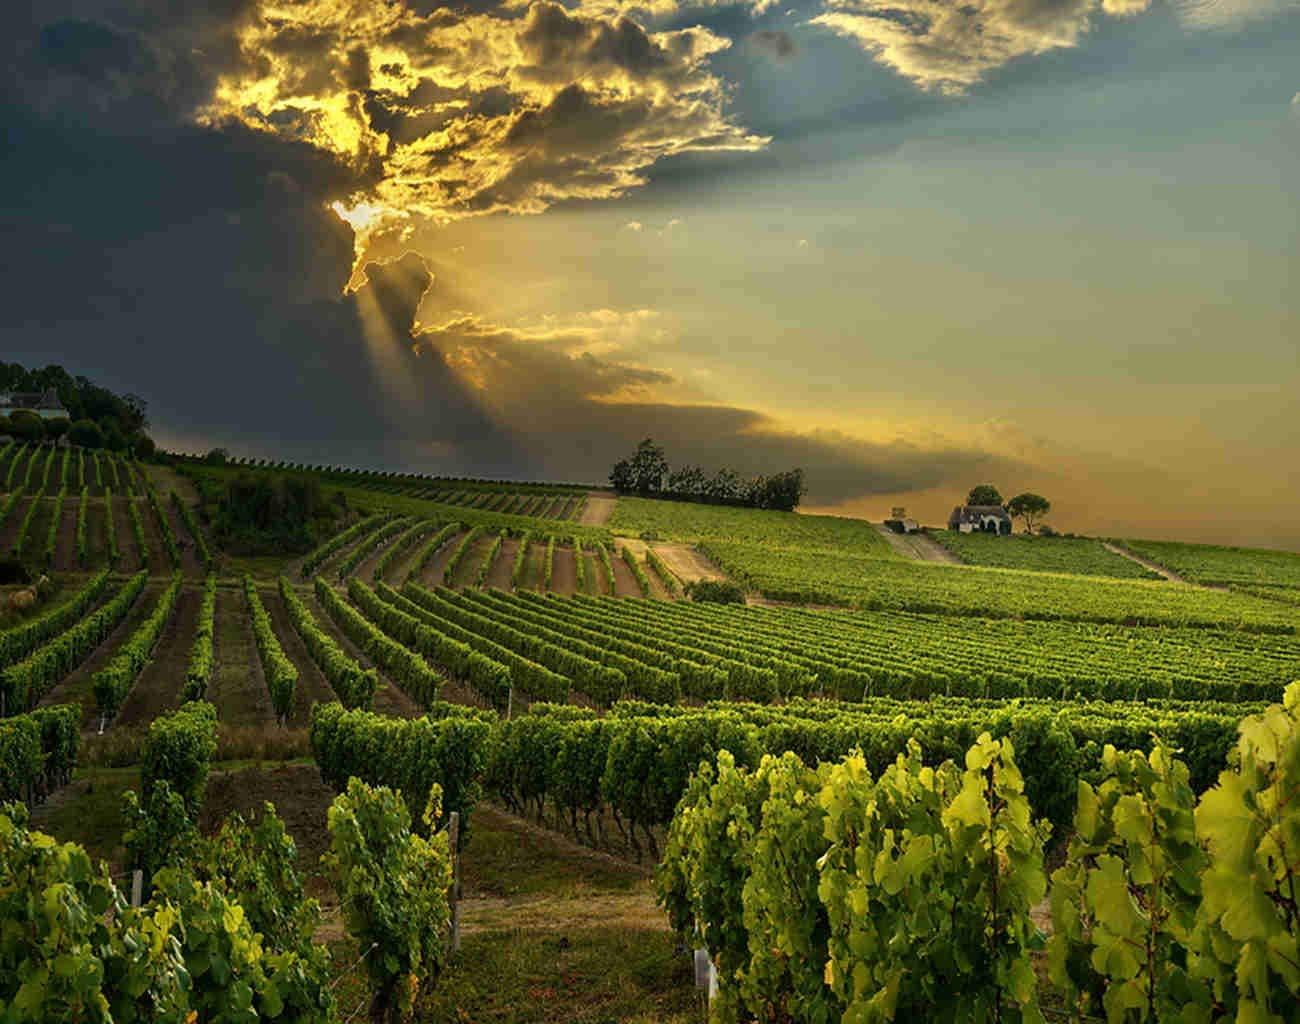 Ghjxda 5D DIY Diamond Painting Kits Country Painting Arts Craft Sunset Over Vineyards South France Painting by Numbers for Adults Canvas Full Drill 16x20 Inch